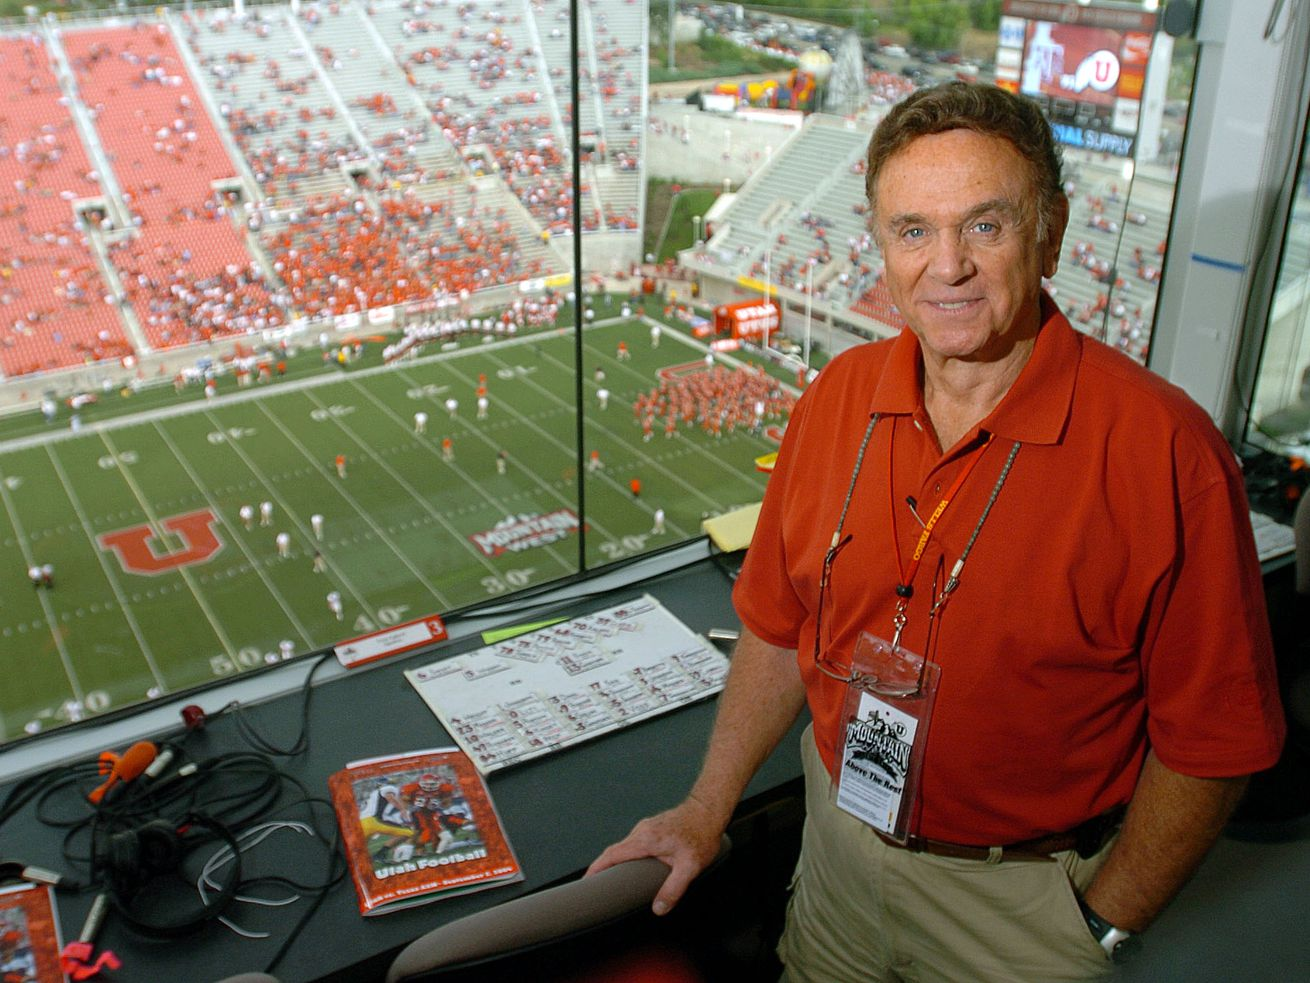 Portrait of Radio personality Bill Marcroft prior to the Texas A&M game Friday September 2, 2004 at Rice Eccles Stadium.